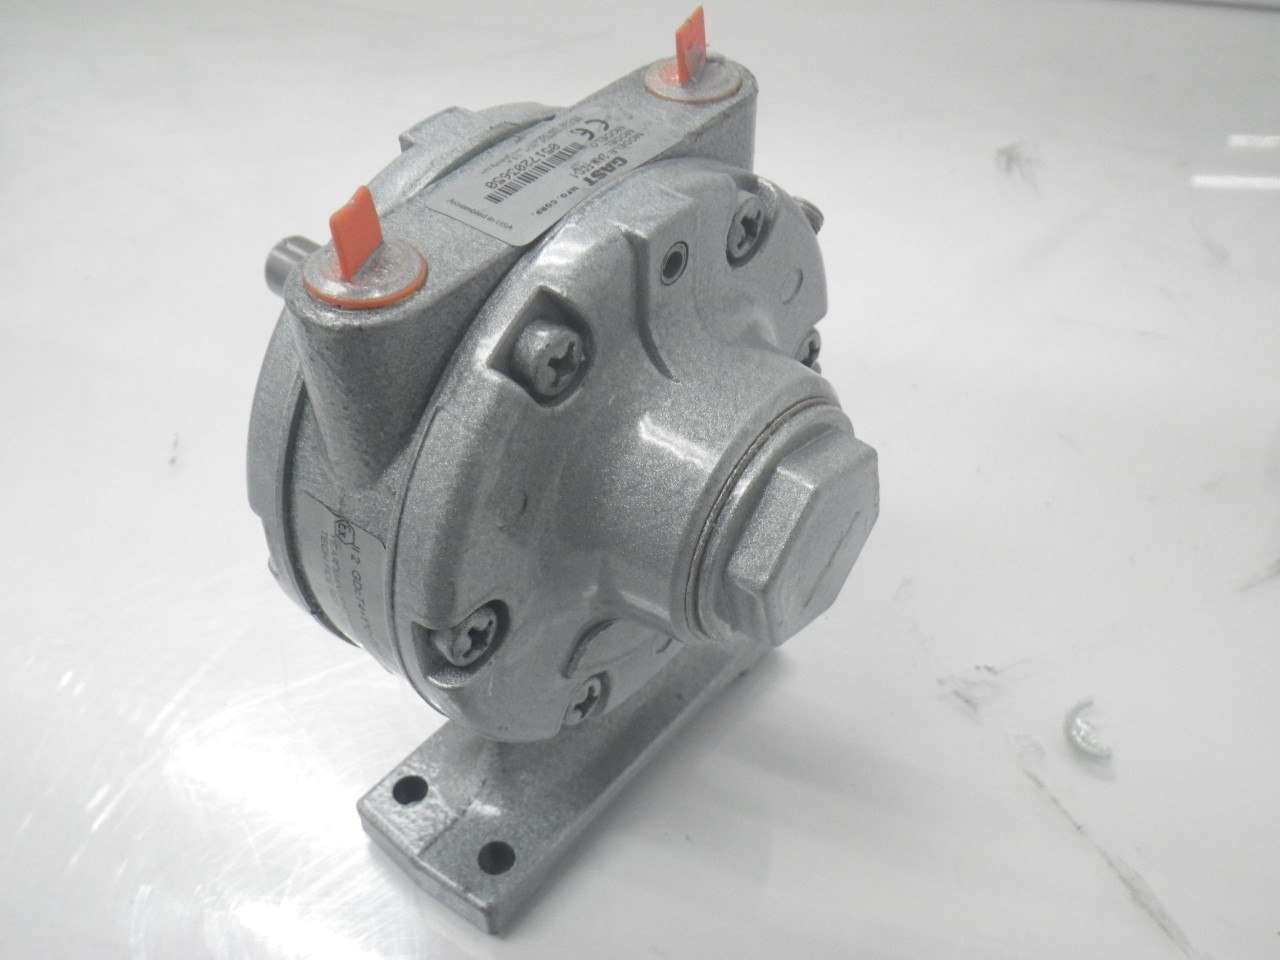 IMGP11832AM-FCC-1 Gast Air Motor (Used Tested) (Very Good Condition) (10)